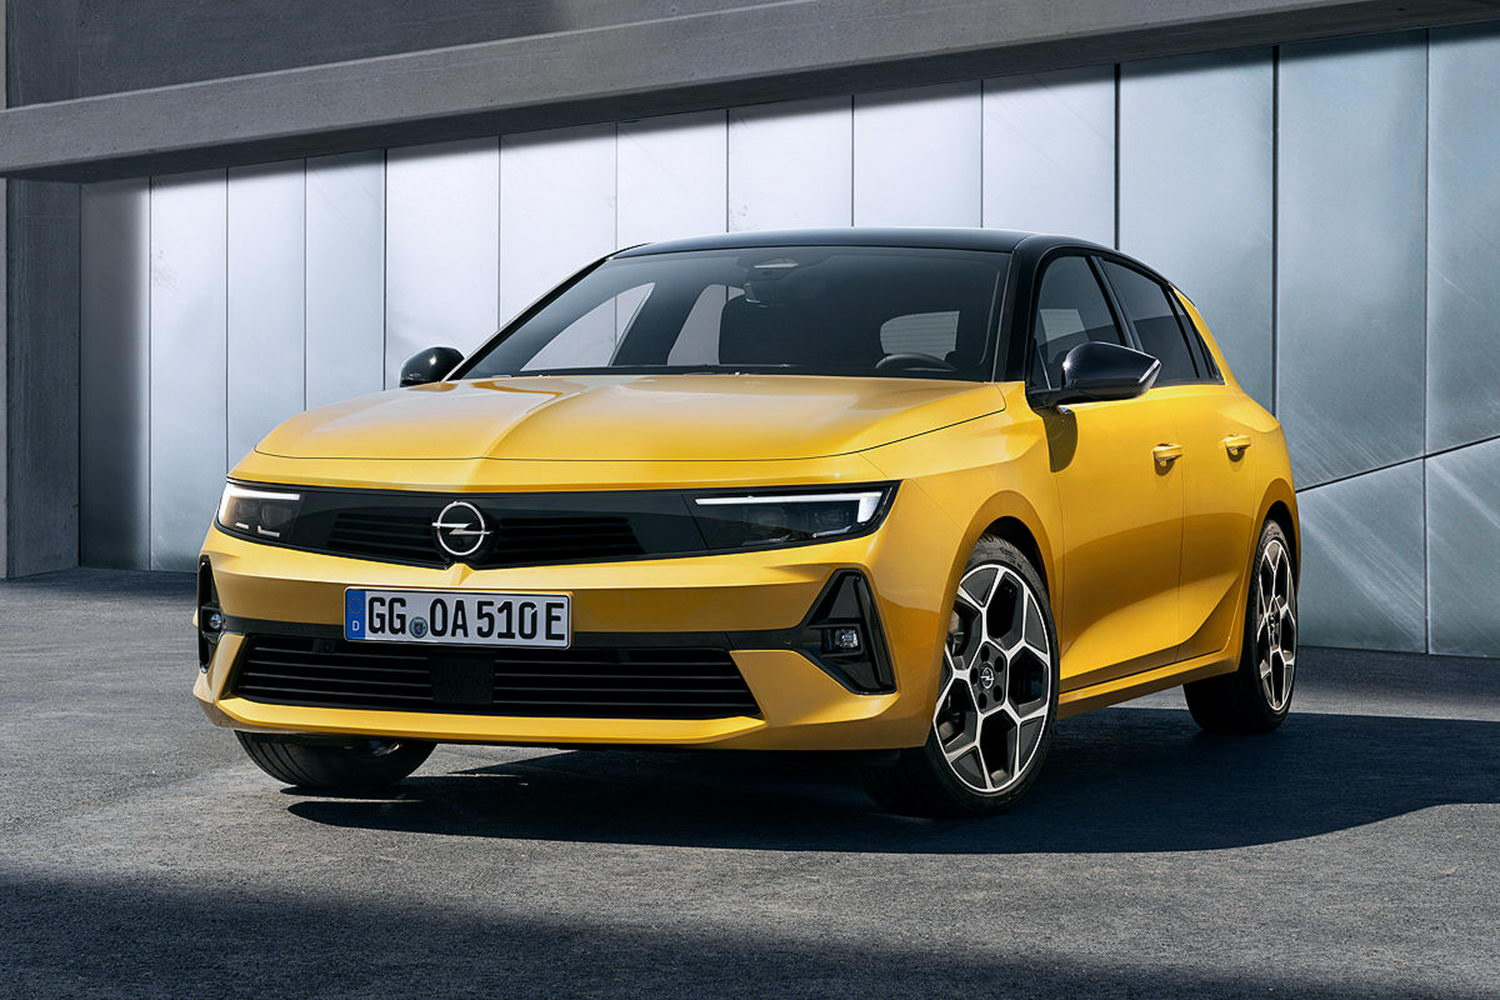 Car News | 2022 Opel Astra revealed for Ireland | CompleteCar.ie